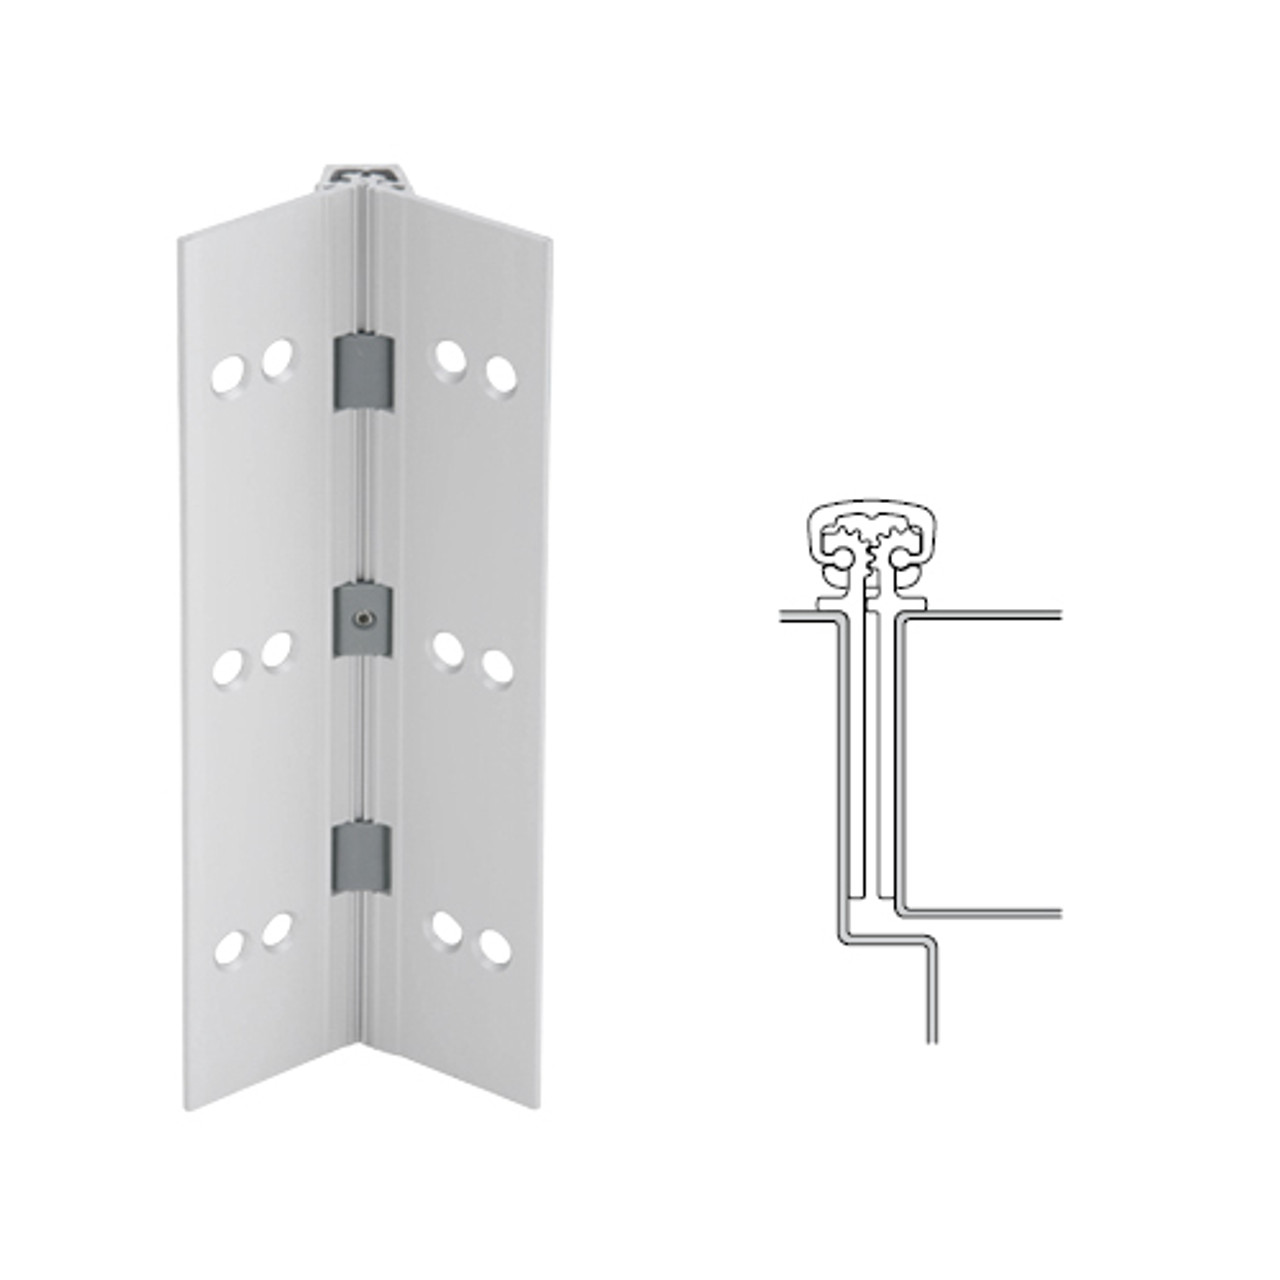 027XY-US28-83-SECWDWD IVES Full Mortise Continuous Geared Hinges with Security Screws - Hex Pin Drive in Satin Aluminum